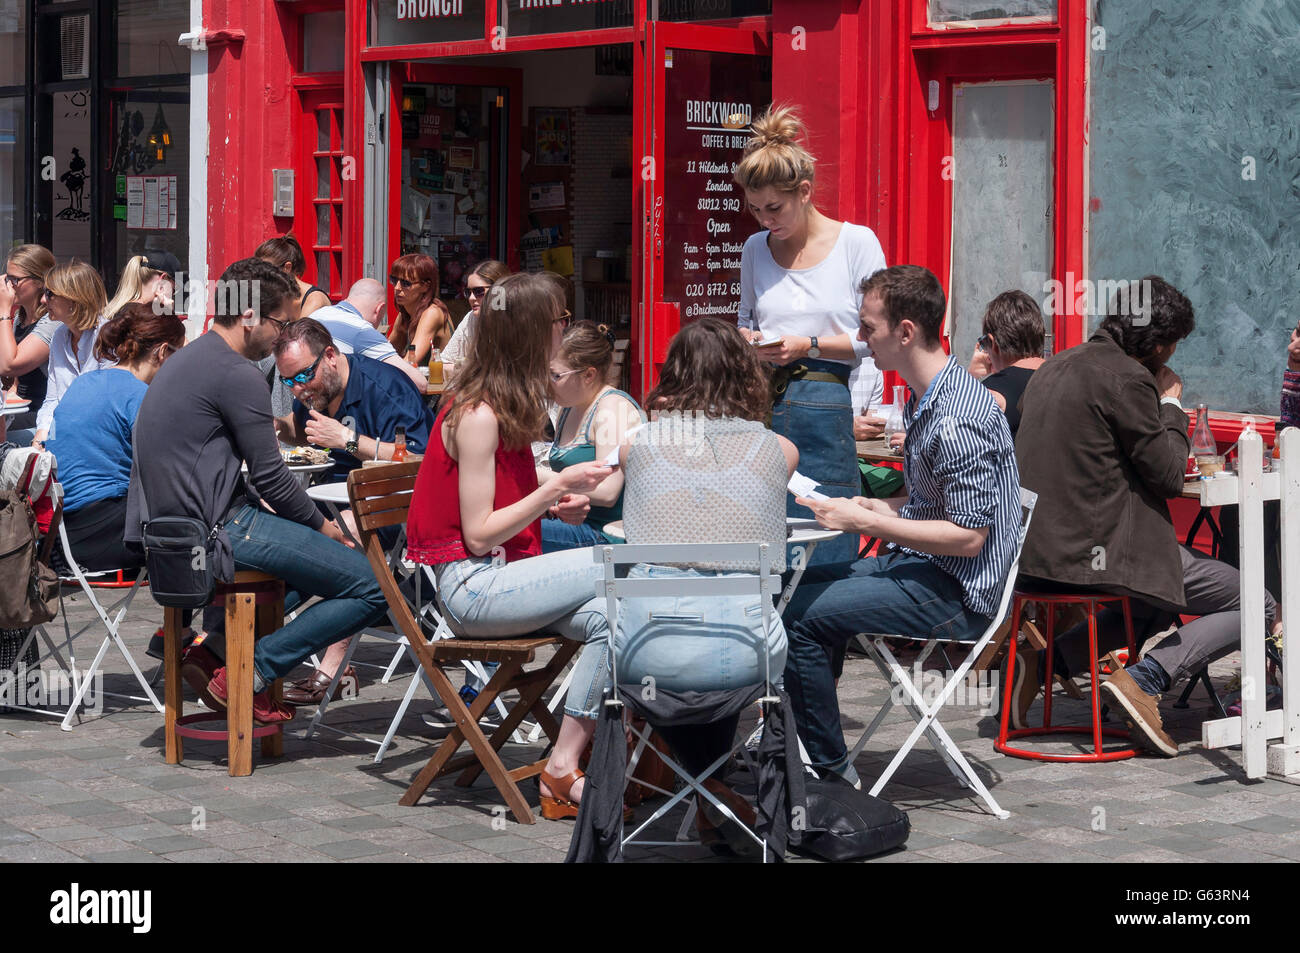 Tables at Brickwood Restaurant, Hildreth Street, Balham, London Borough of Wandsworth, Greater London, England, - Stock Image